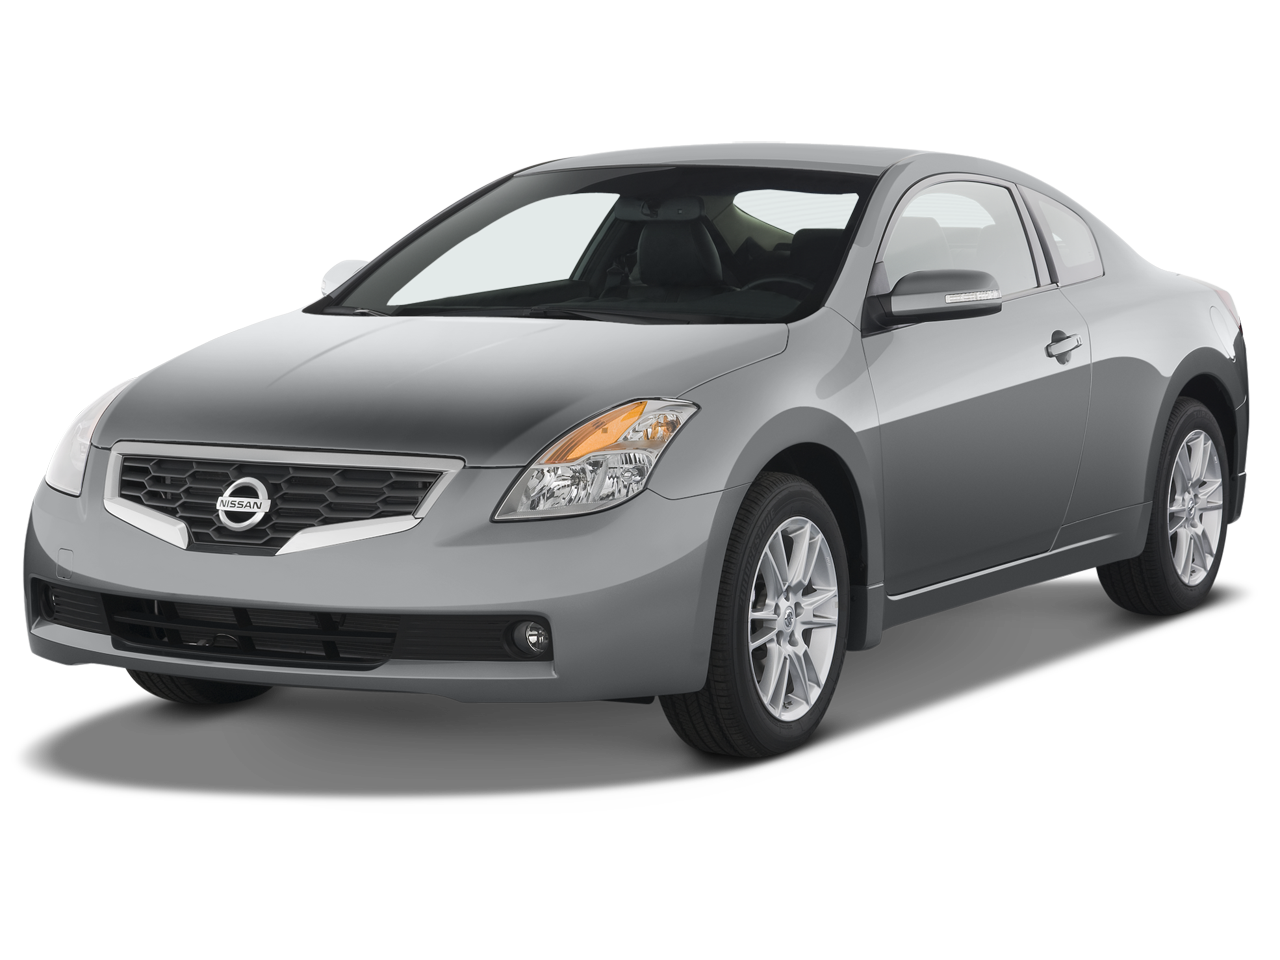 2008 nissan altima hybrid fuel efficient news car features and reviews automobile magazine. Black Bedroom Furniture Sets. Home Design Ideas